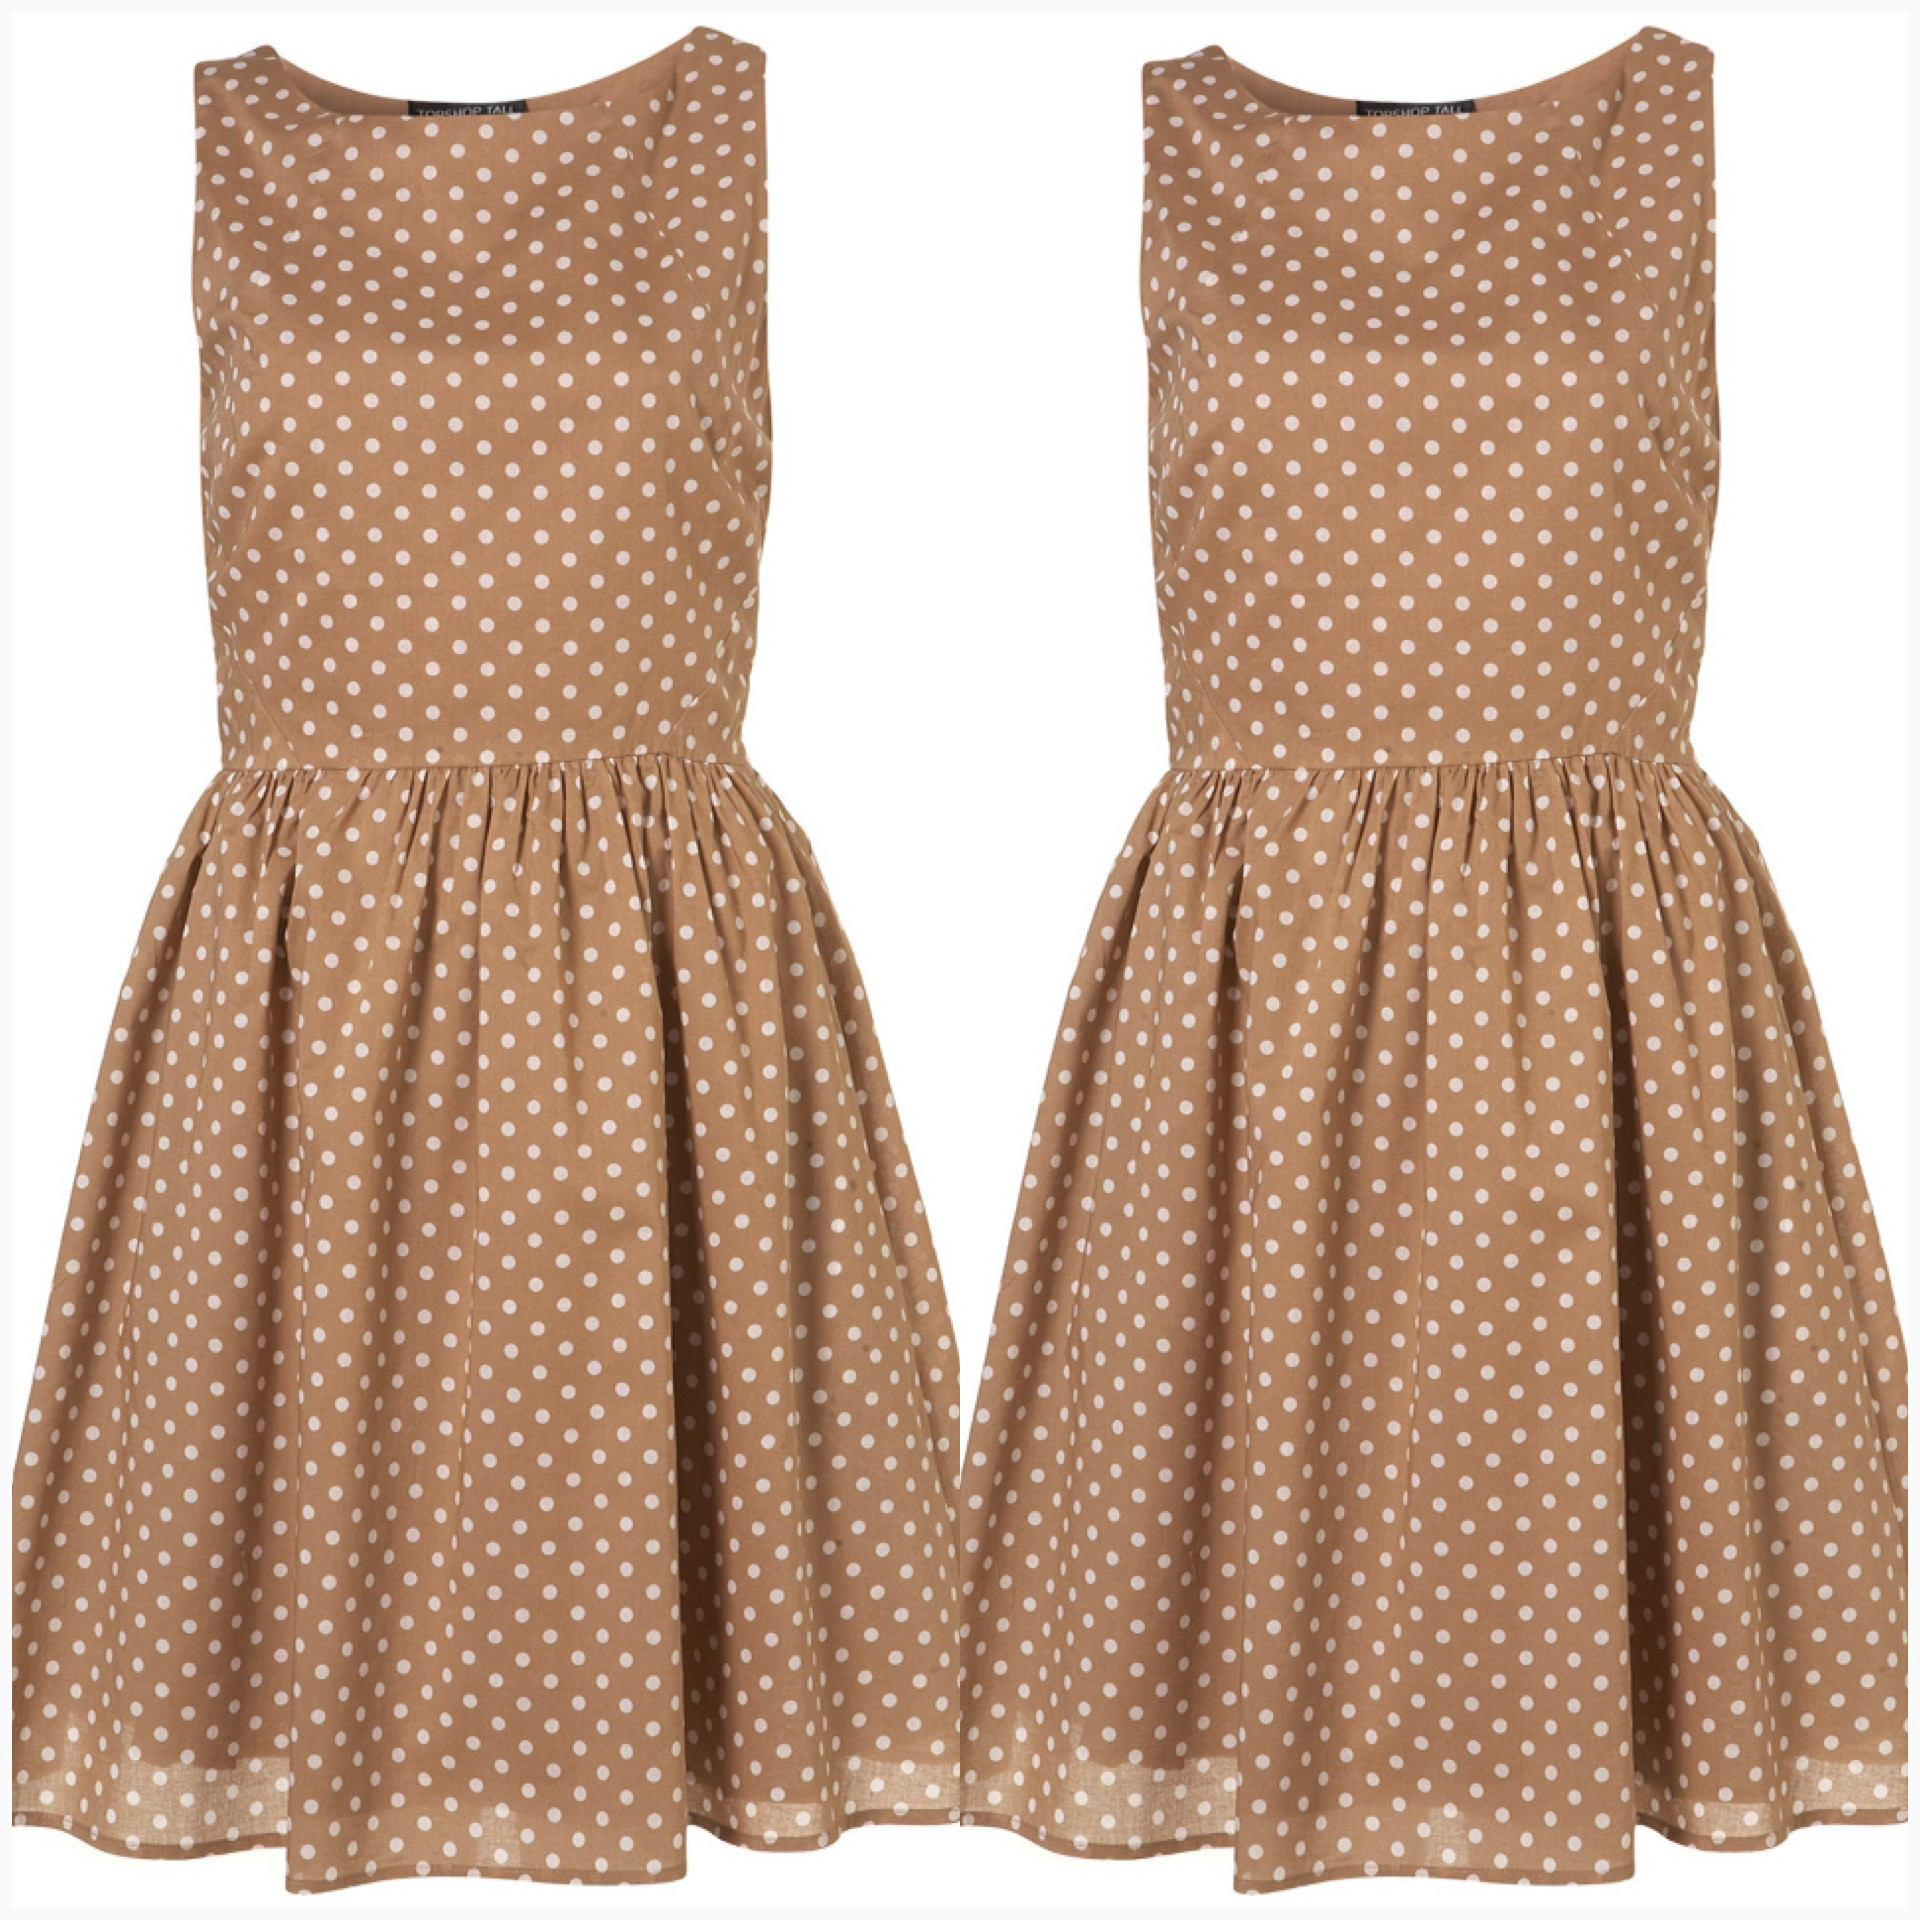 Topshop Polkadot dress Size Ukุ 6-8